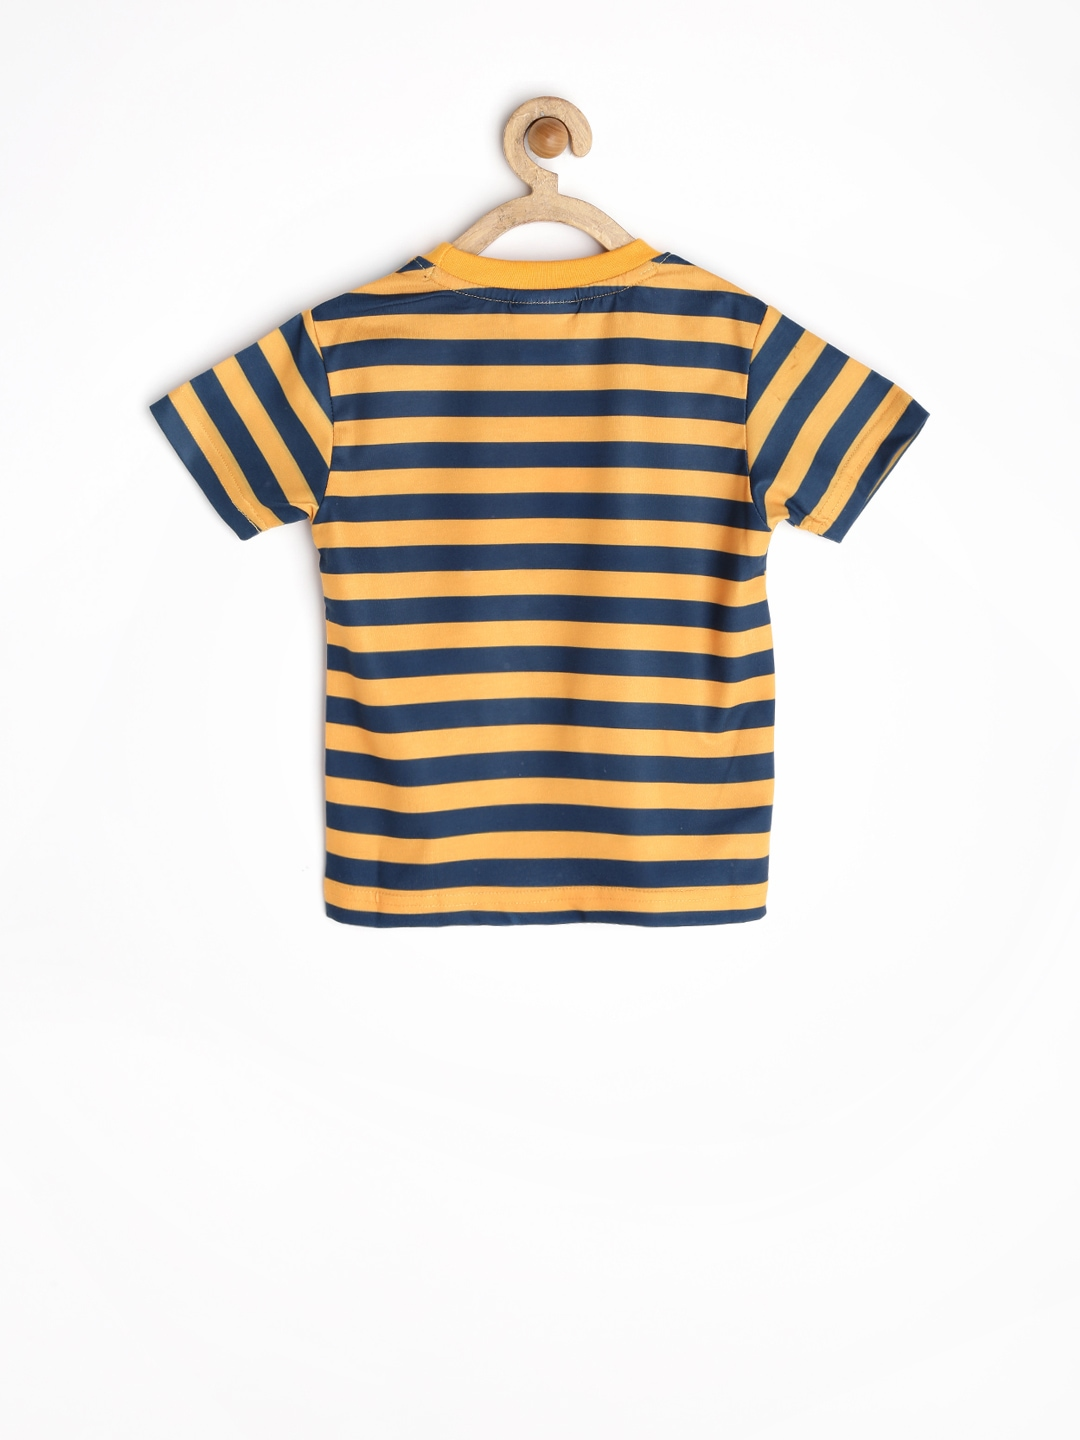 Myntra jungle book boys mustard yellow teal blue striped for Boys teal t shirt